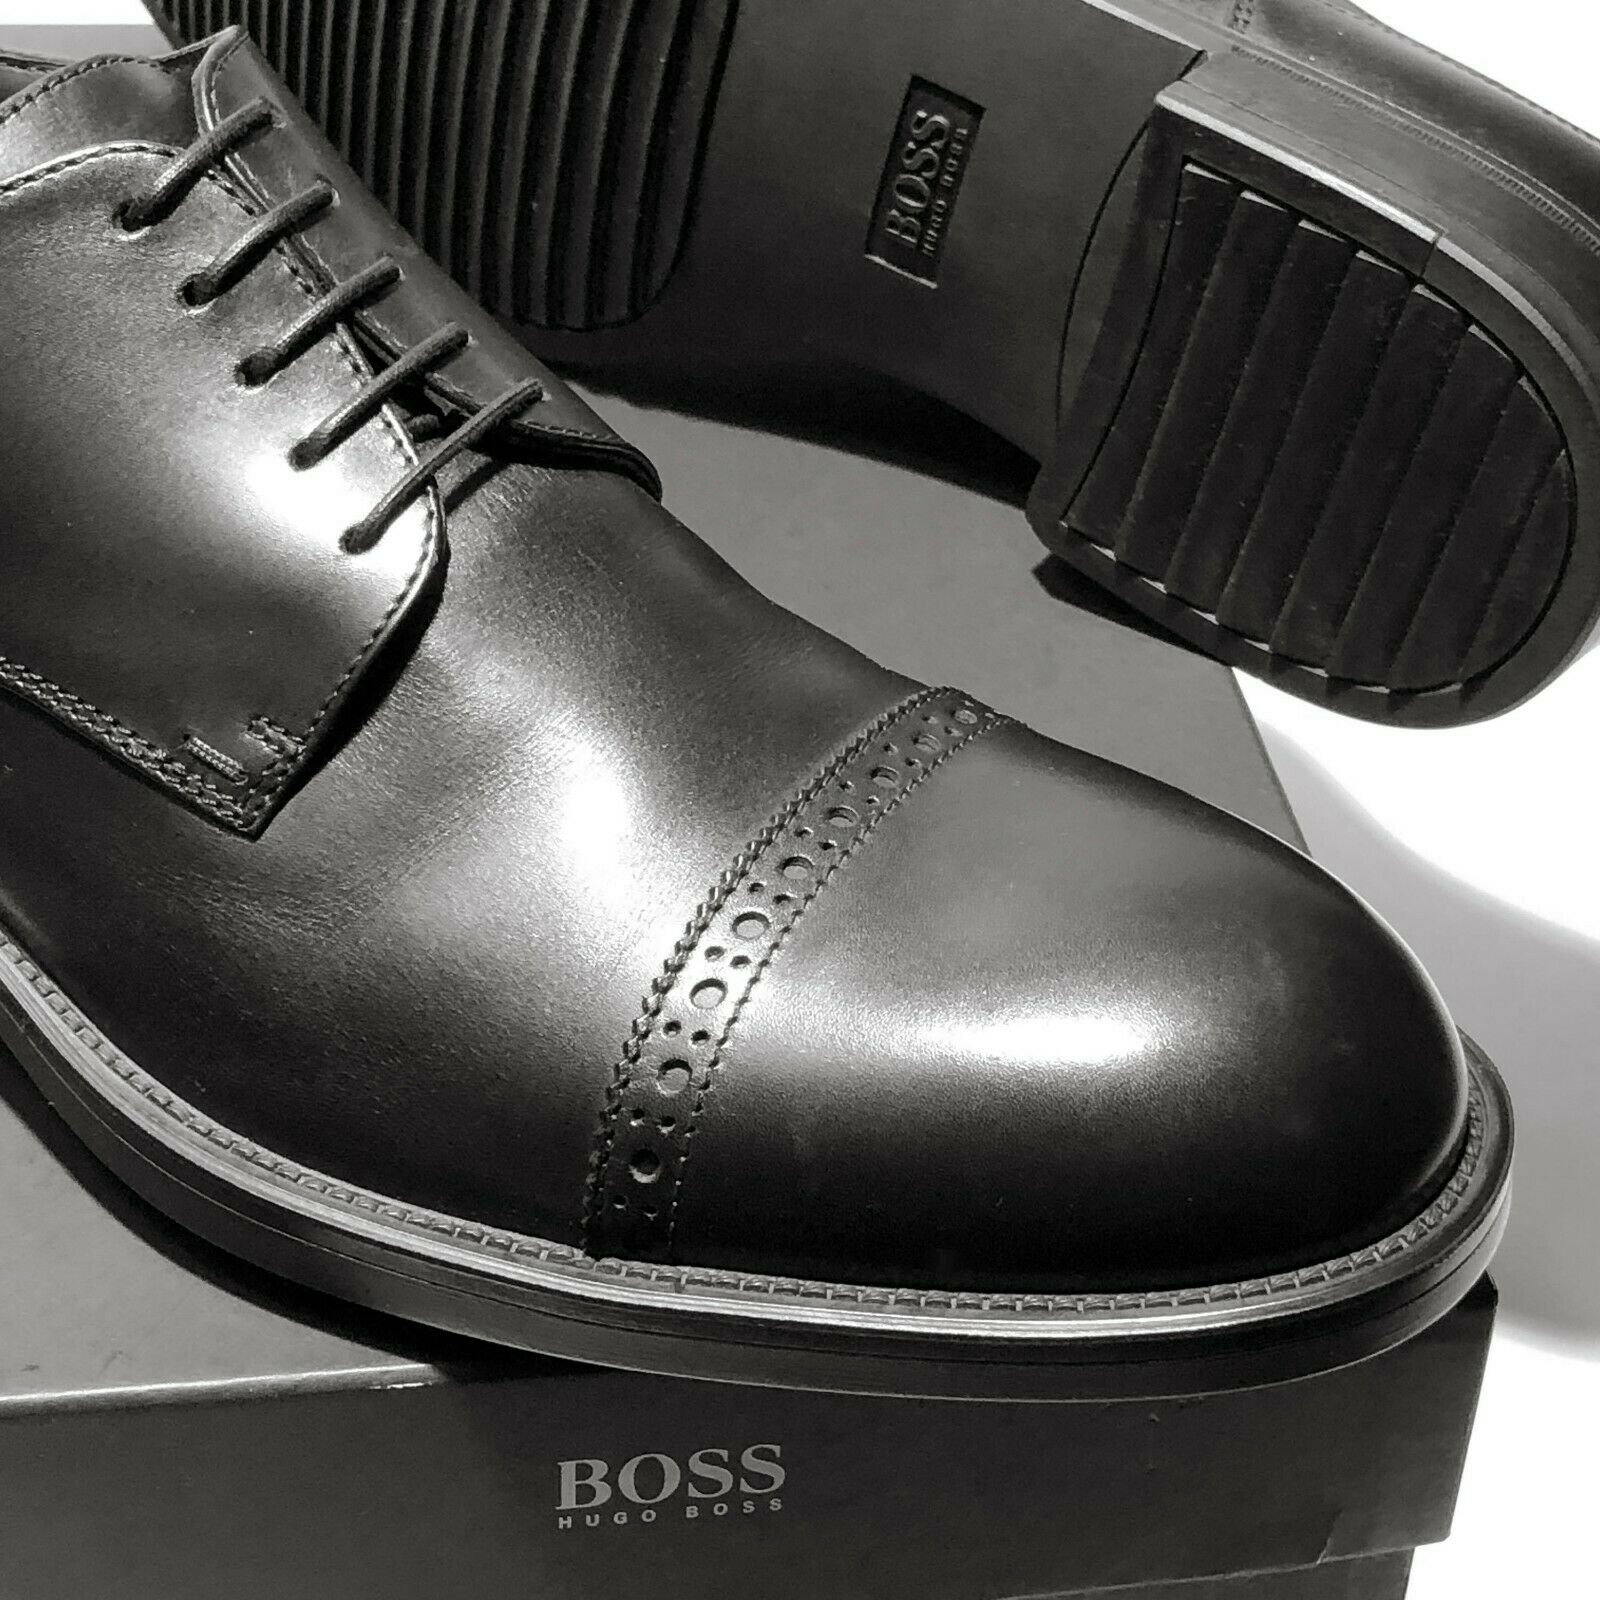 HUGO BOSS ITALY nero Leather Captoe 9.5 Men's Oxford Dress Formal Derby Casual